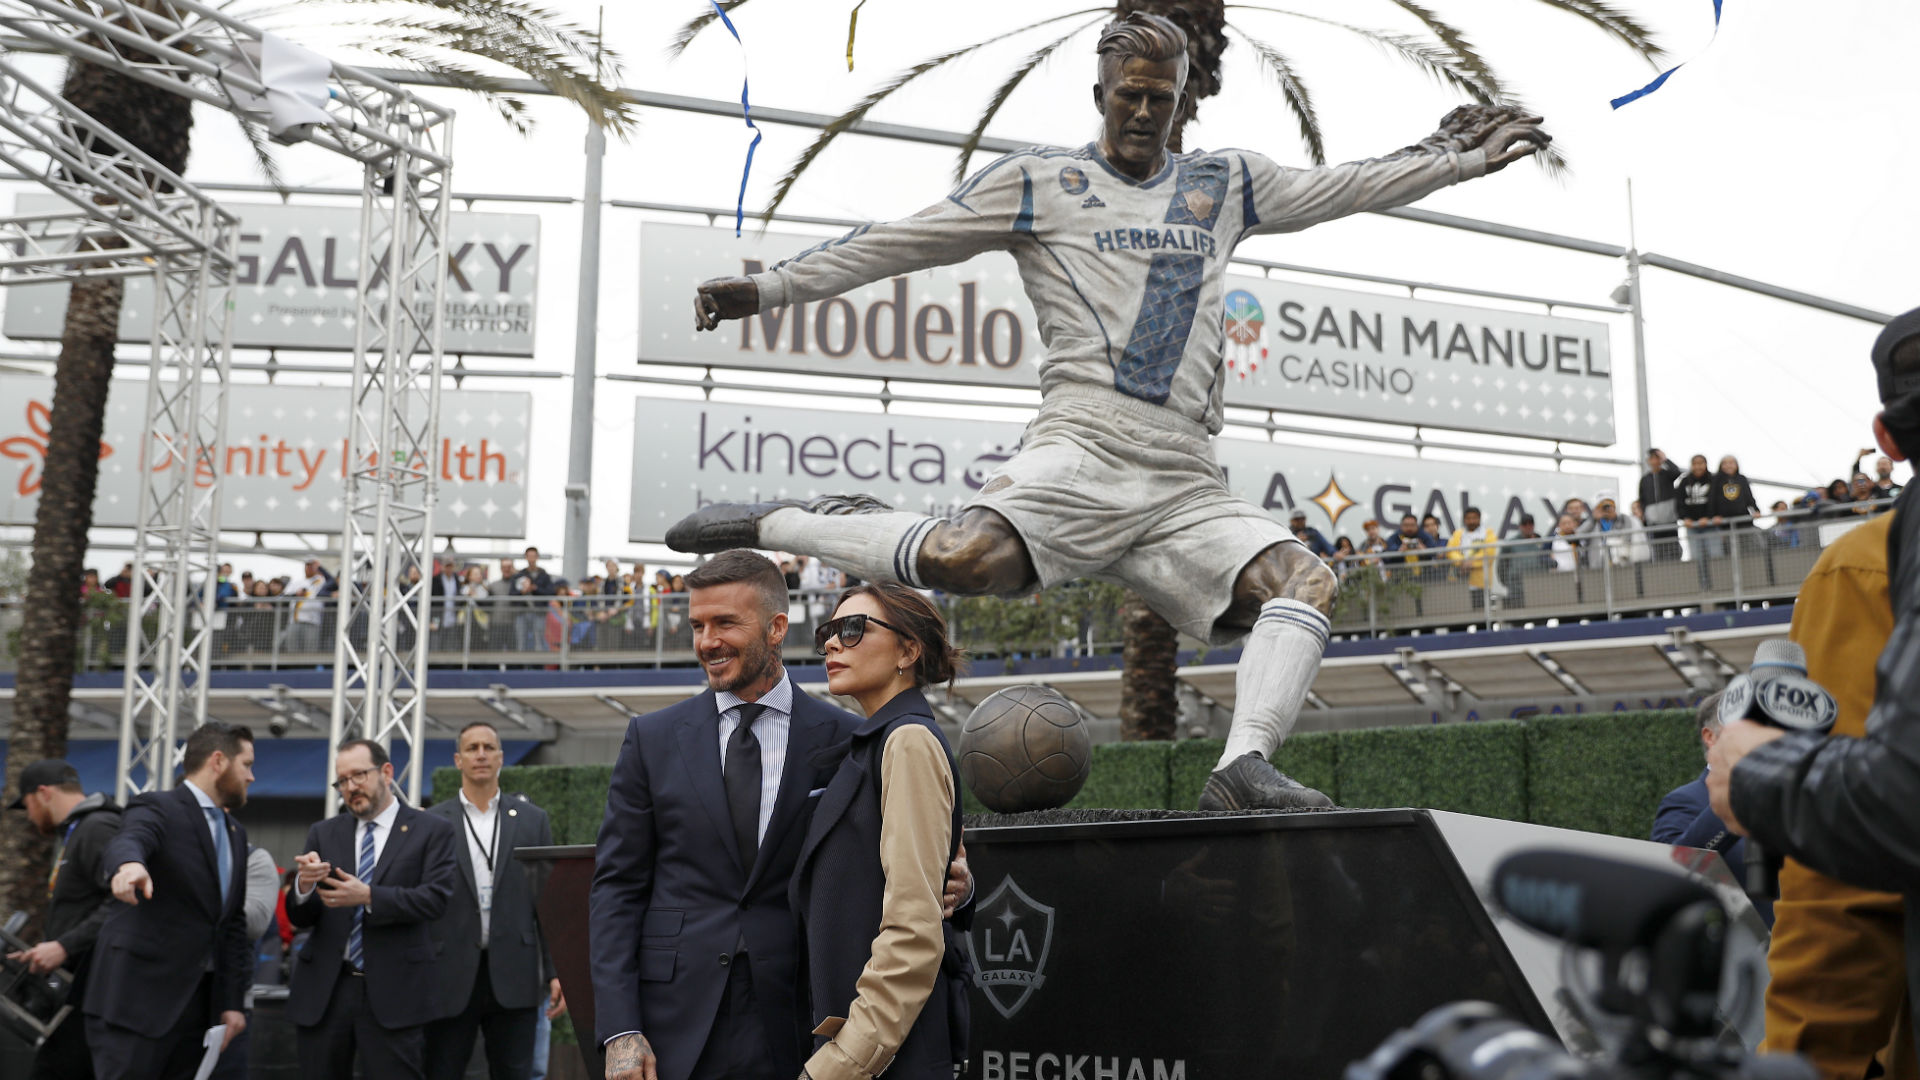 David Beckham statue unveiled by LA Galaxy ahead of MLS season opener